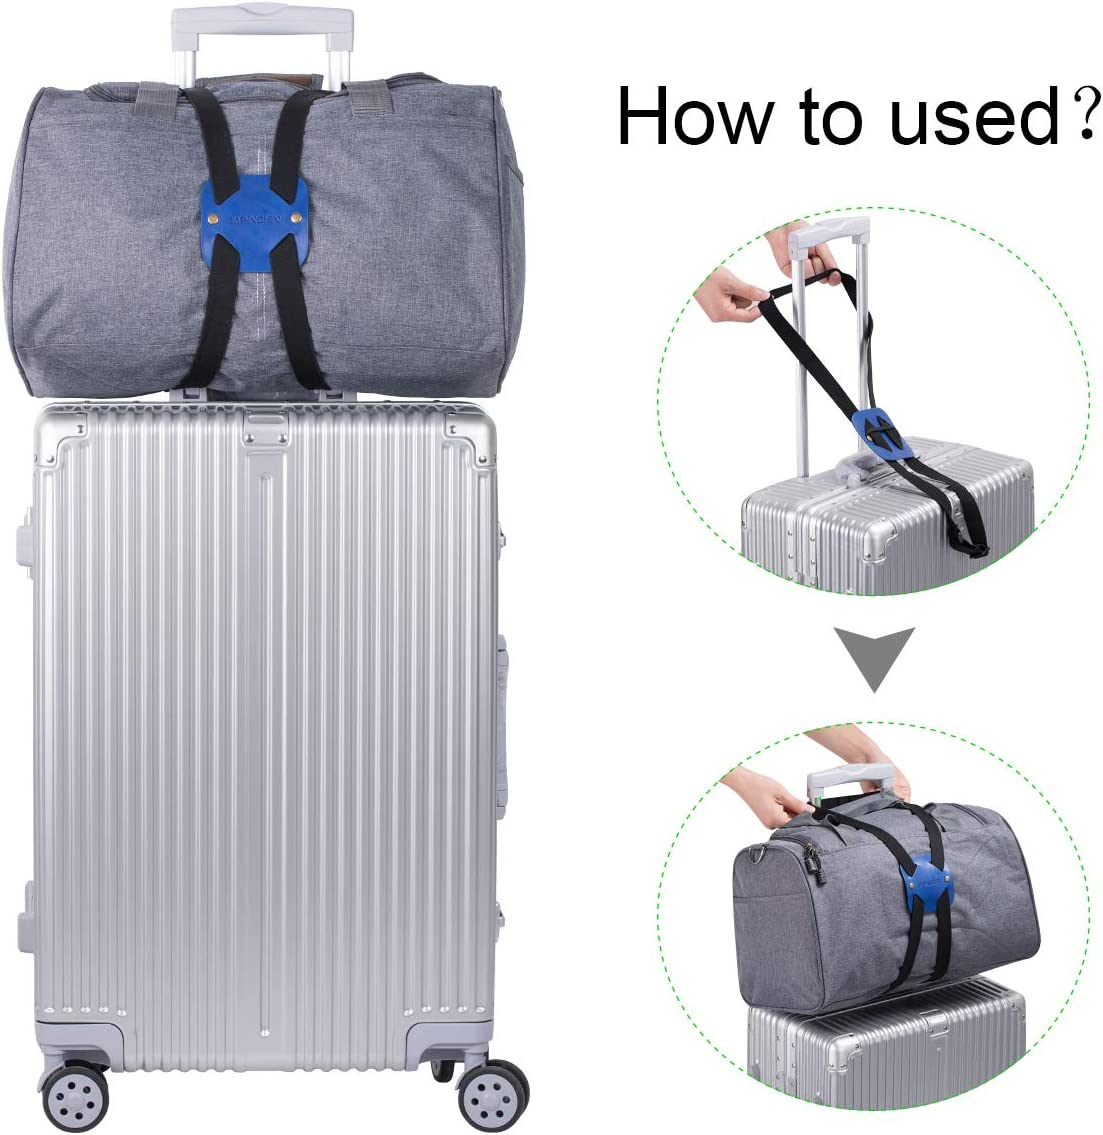 1-pack,Black Bag Bungee Luggage Bungee An Adjustable and Portable Travel Suitcase Accessory Luggage Straps Suitcase Adjustable Belt